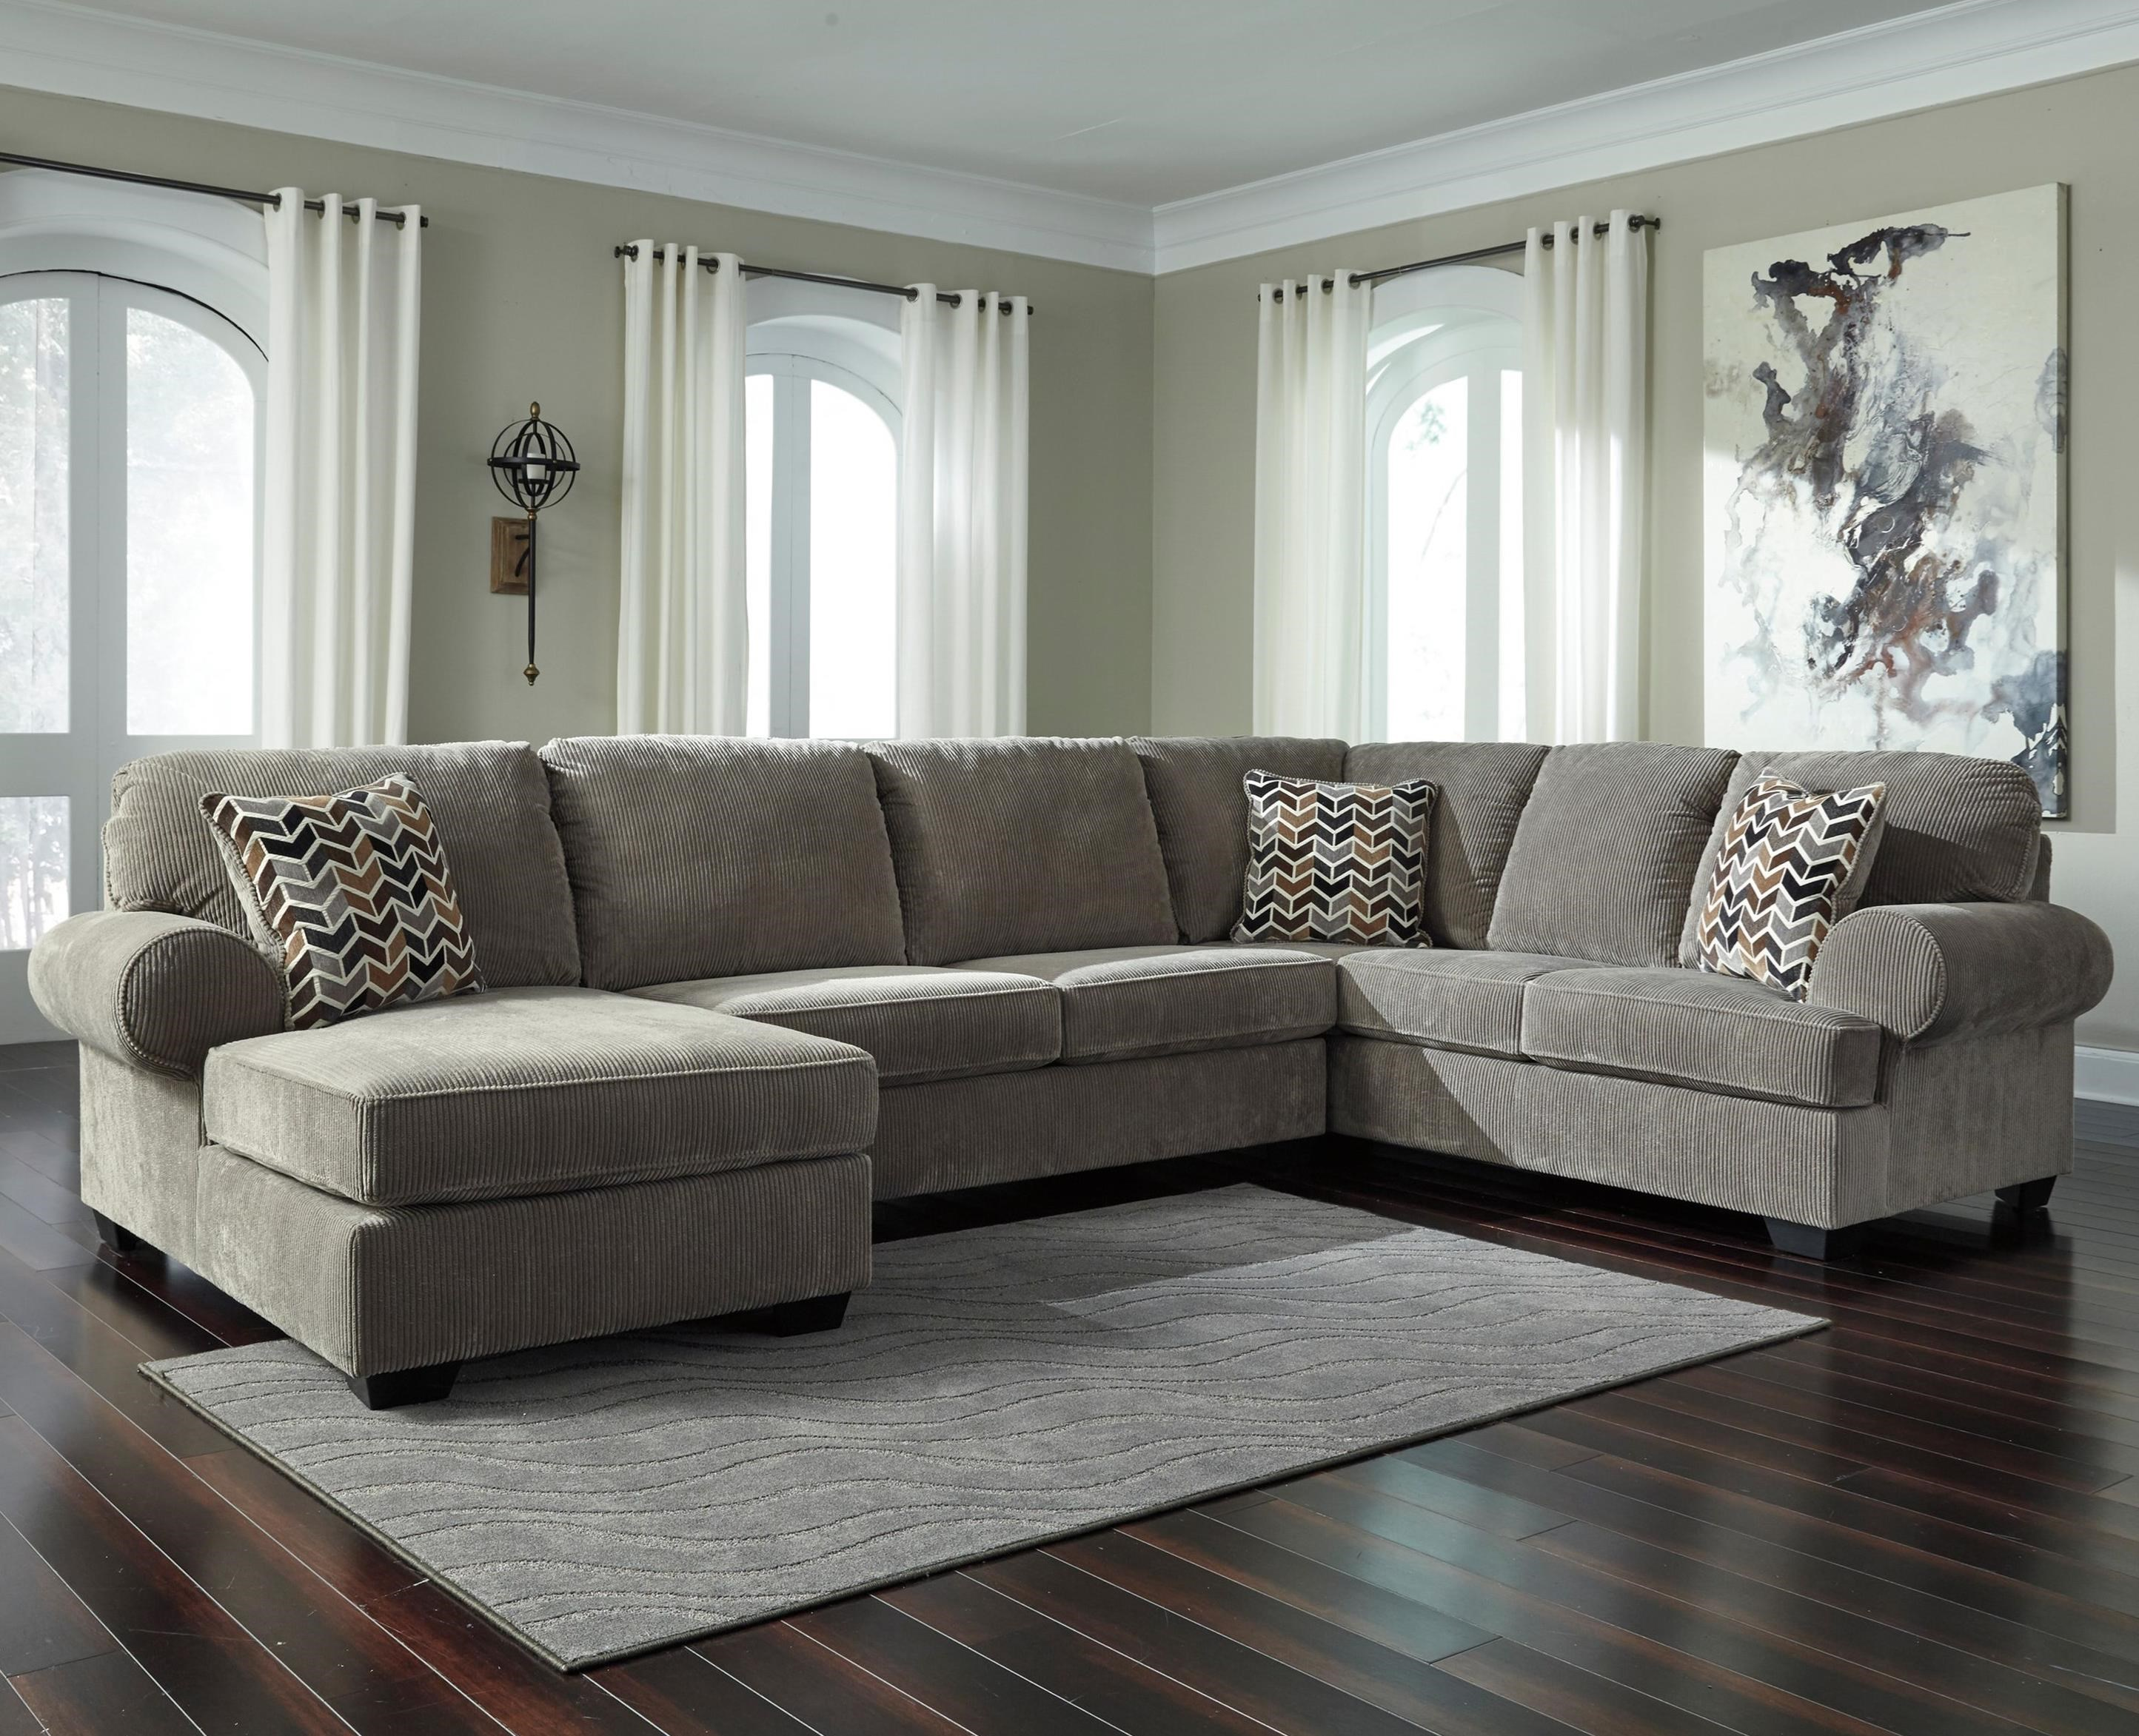 Signature Design By Ashley Jinllingsly Contemporary 3 Piece Sectional With Left Chaise In